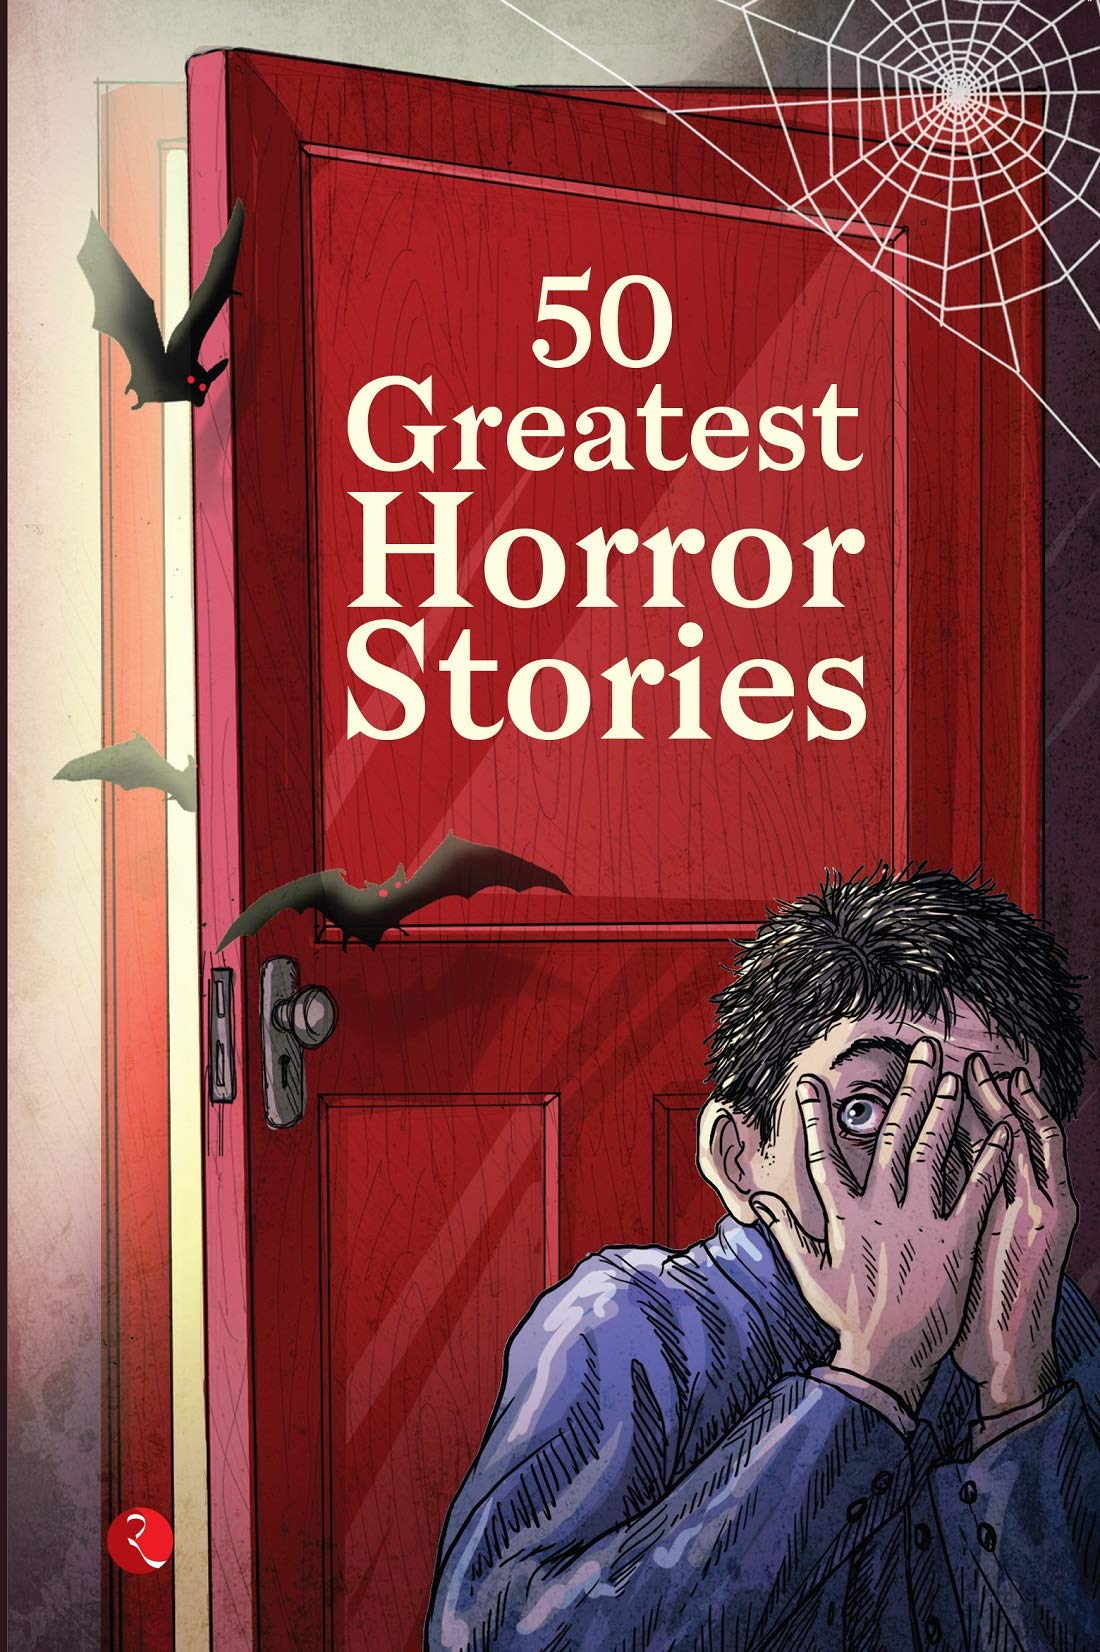 50 Greatest Horror Stories